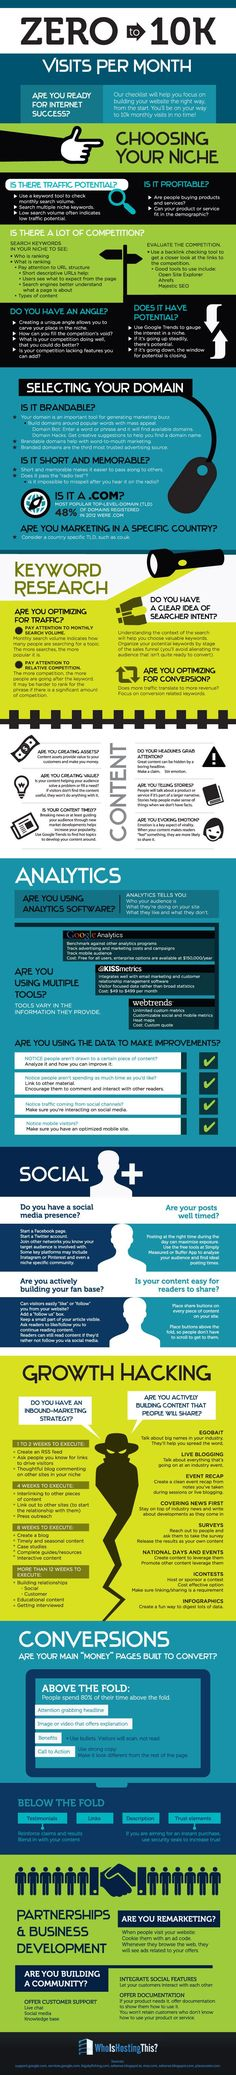 The beginner's guide to get 10,000 monthly blog views - #infographic #blogging #trafficbuilding